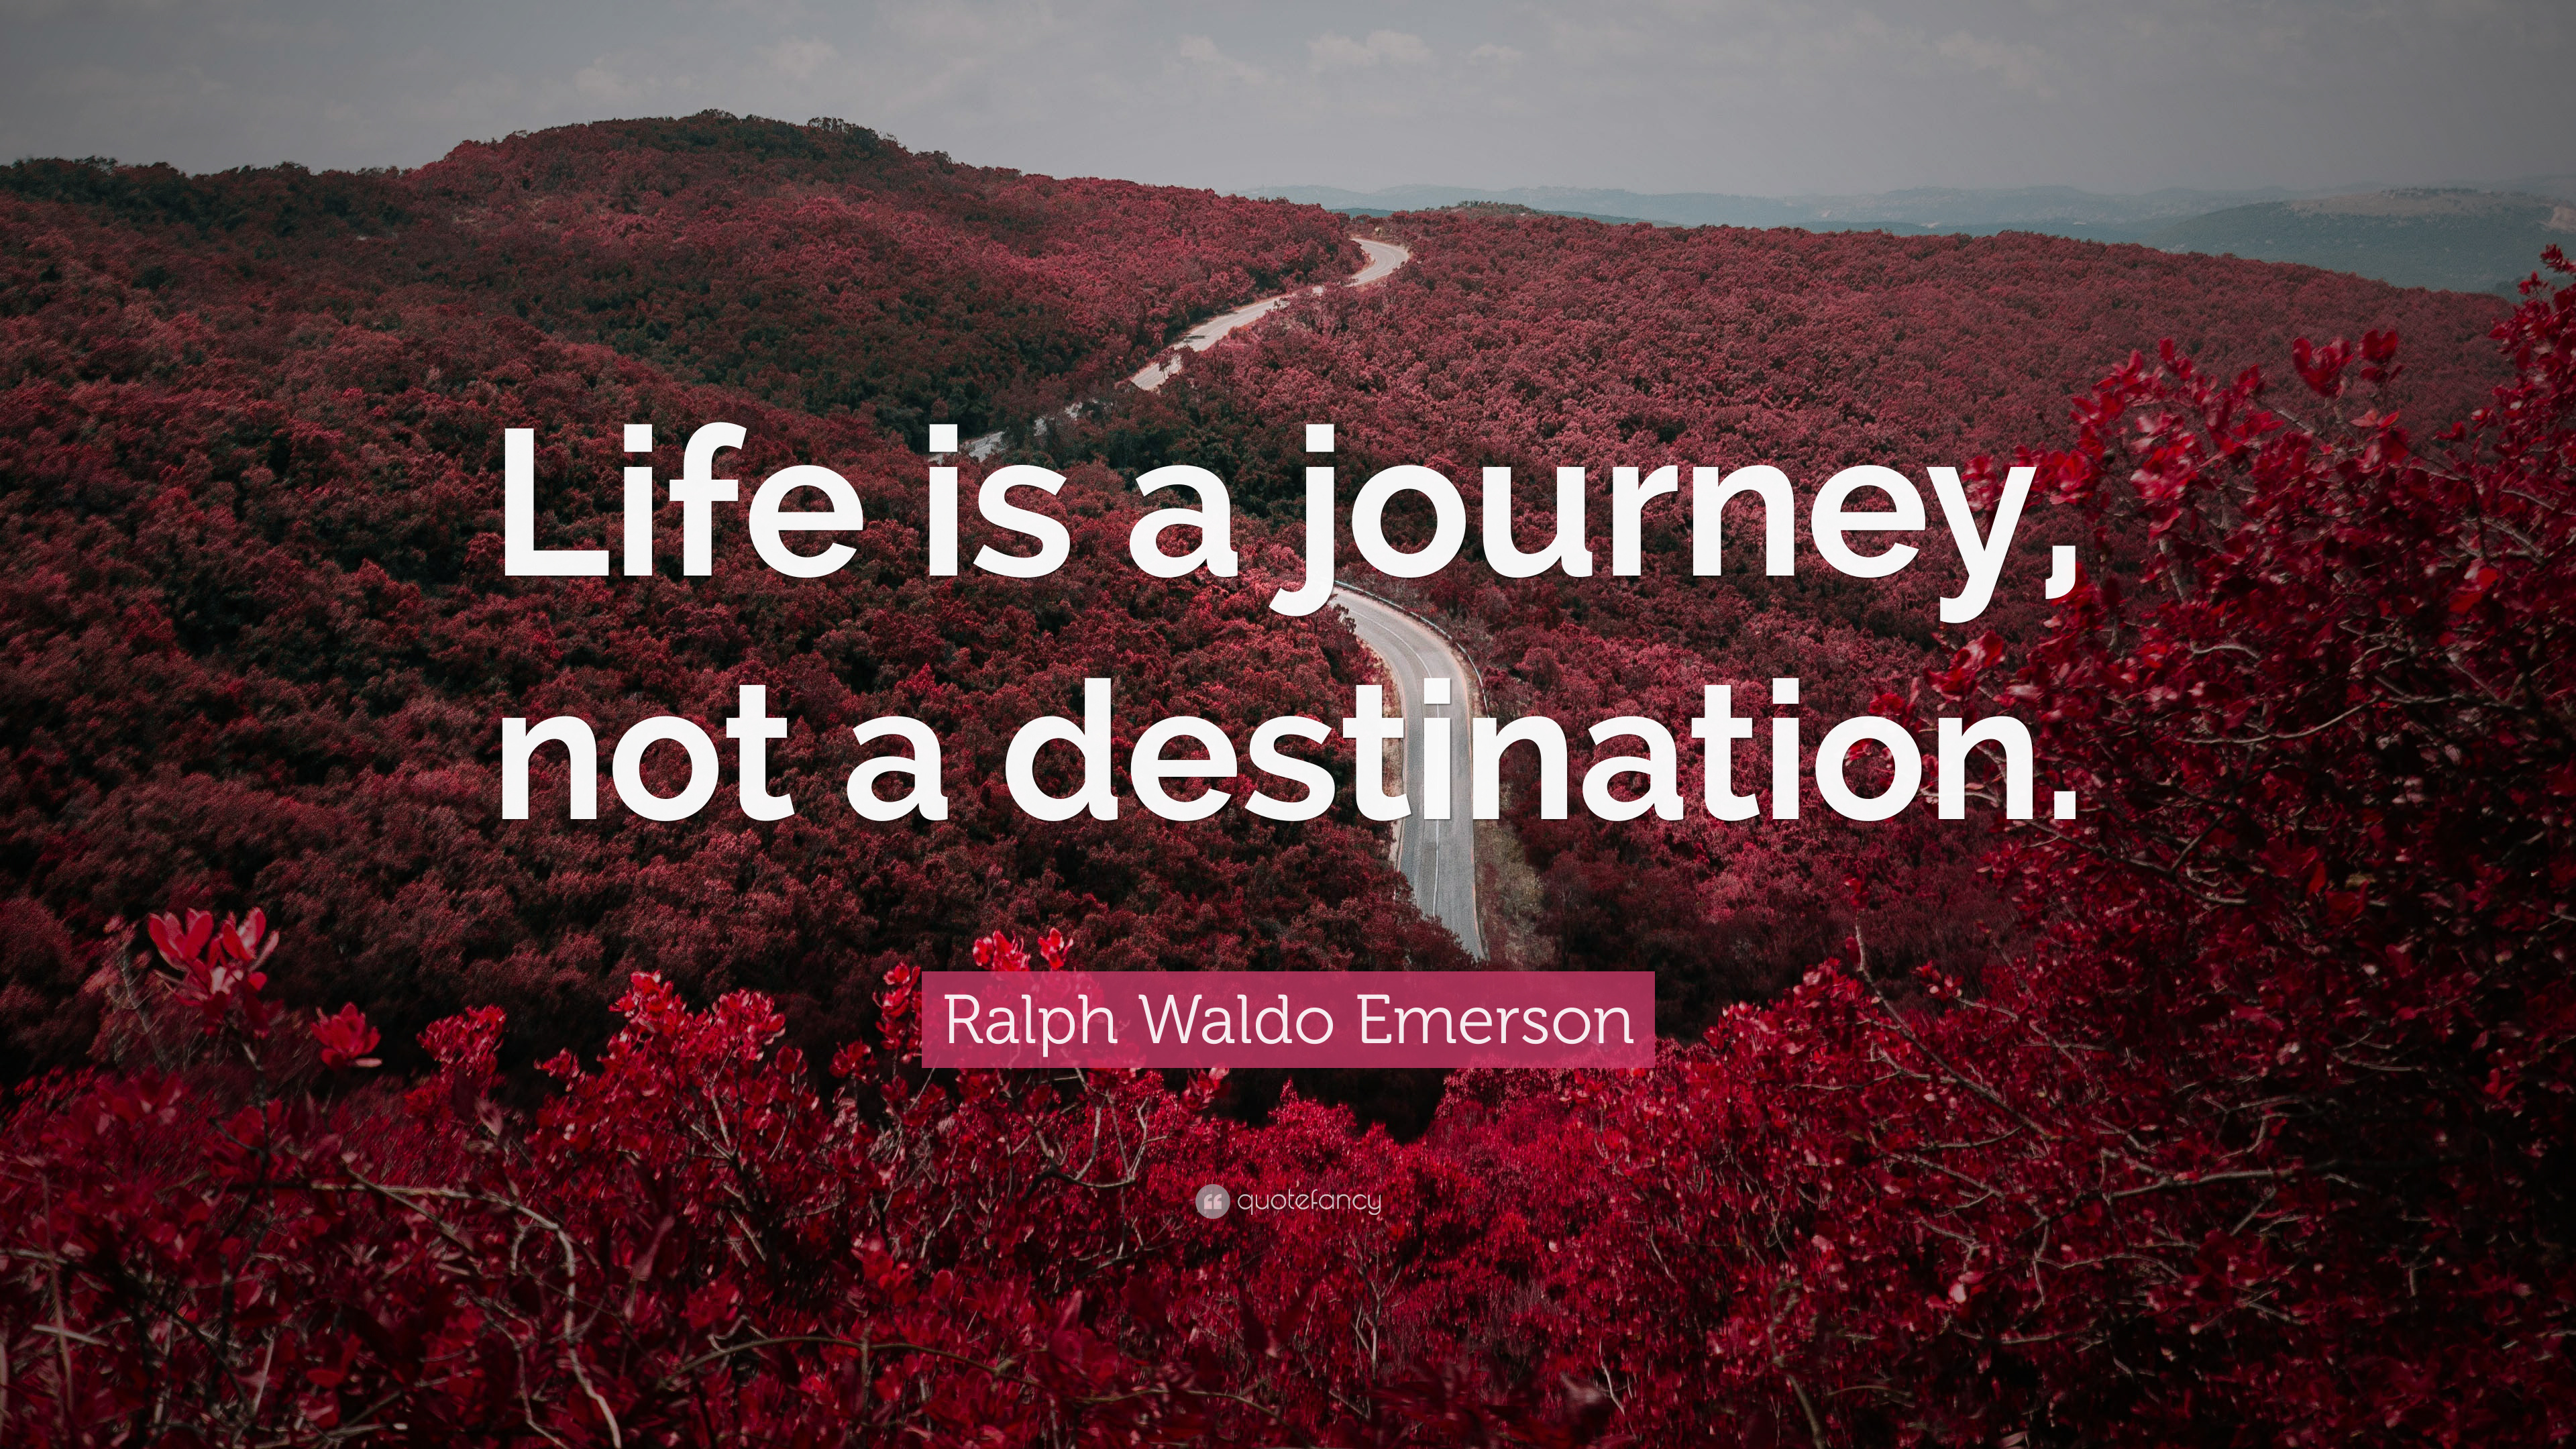 Ralph Waldo Emerson Quote Life Is A Journey Not A Destination